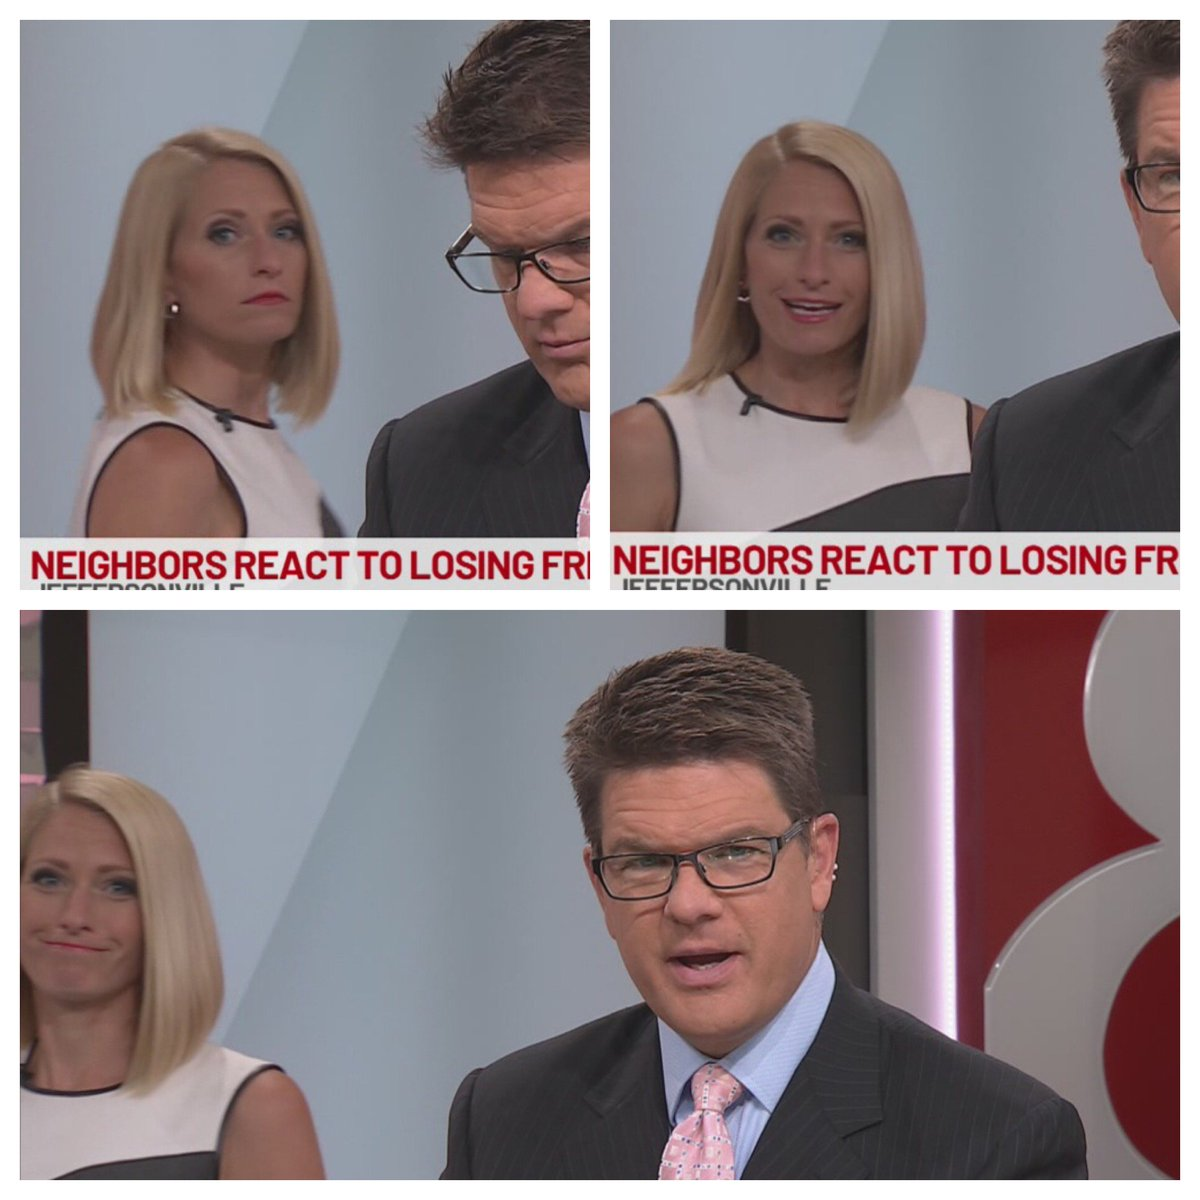 Step 1: Walk back to anchor desk during a soundbite that airs shorter than expected. Realize you&#39;re caught on camera. Step 2: Decide to start delivering the story when your co-anchor realizes he, too, is on screen. Step 3: Walk away knowing &quot;he&#39;s got this.&quot;  @WISH_TV #Daybreak8 <br>http://pic.twitter.com/A6iKEkJe17